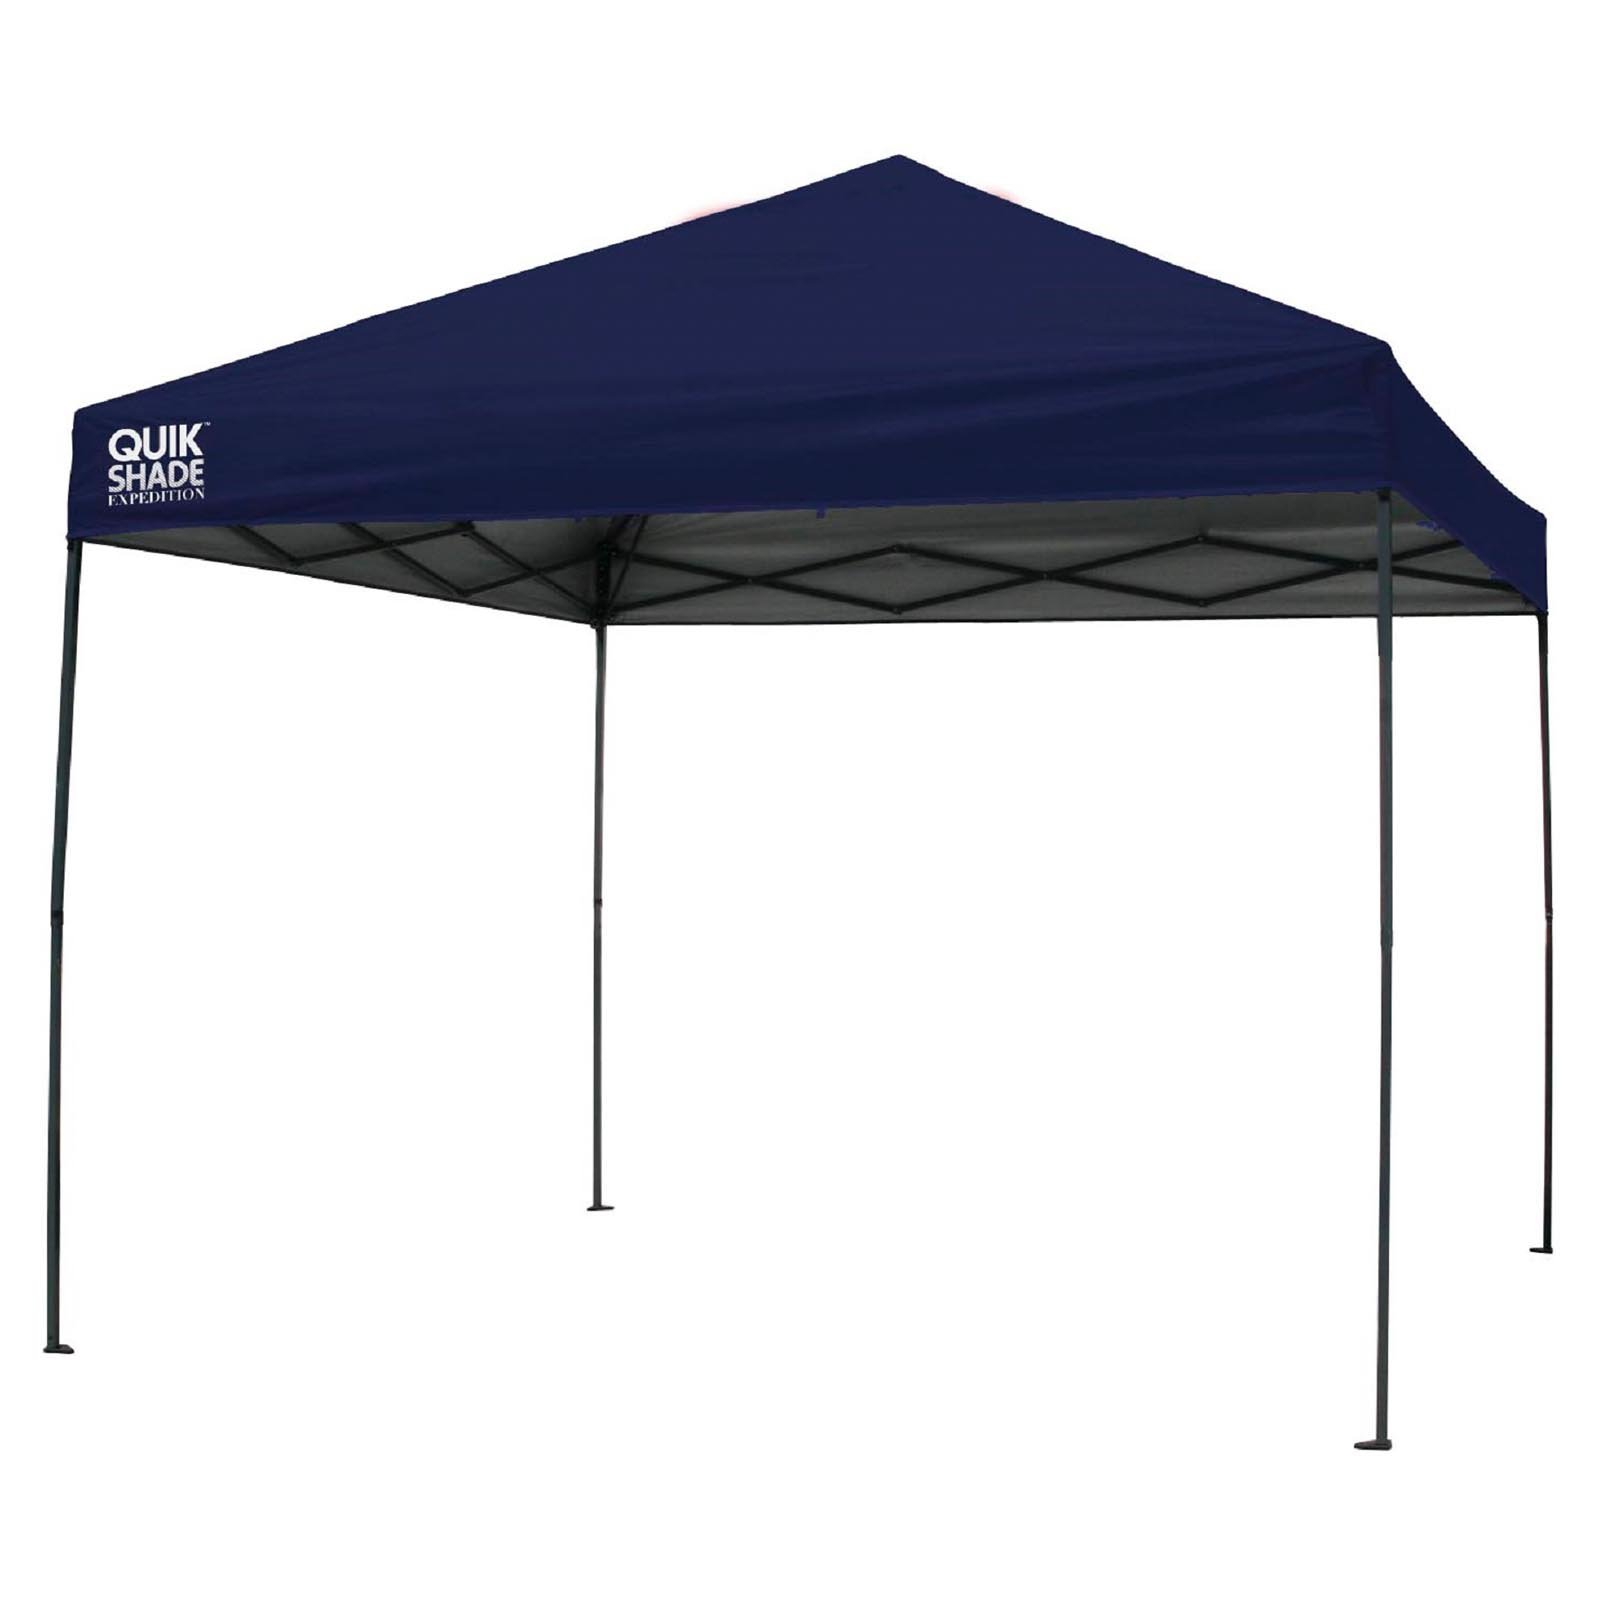 Quik Shade Expedition 10x10 Straight Leg Instant Canopy 100 Sq Ft